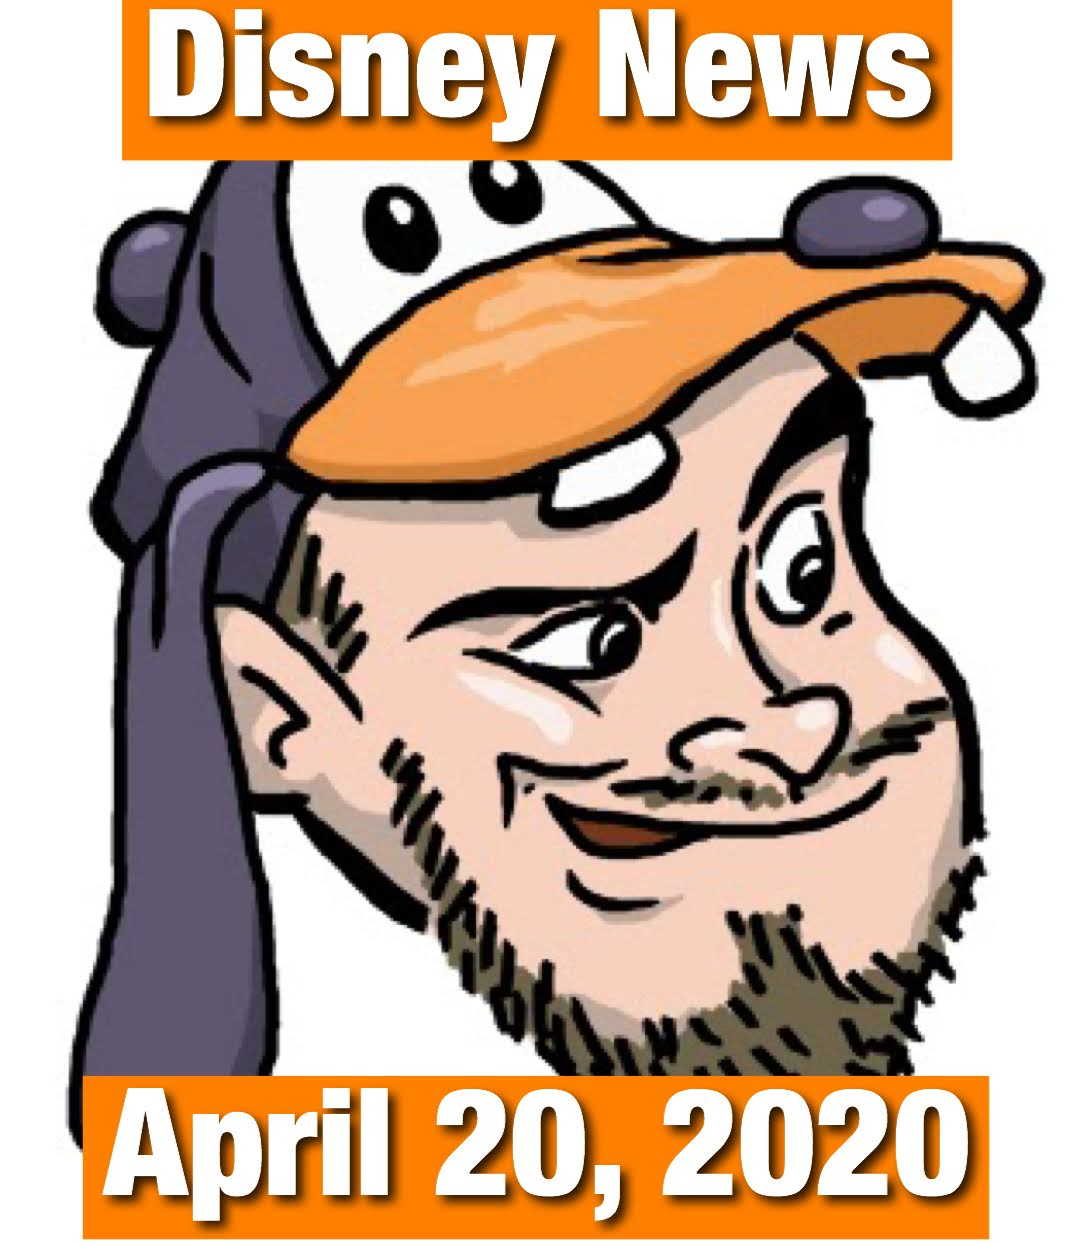 Disney News For April 20, 2020